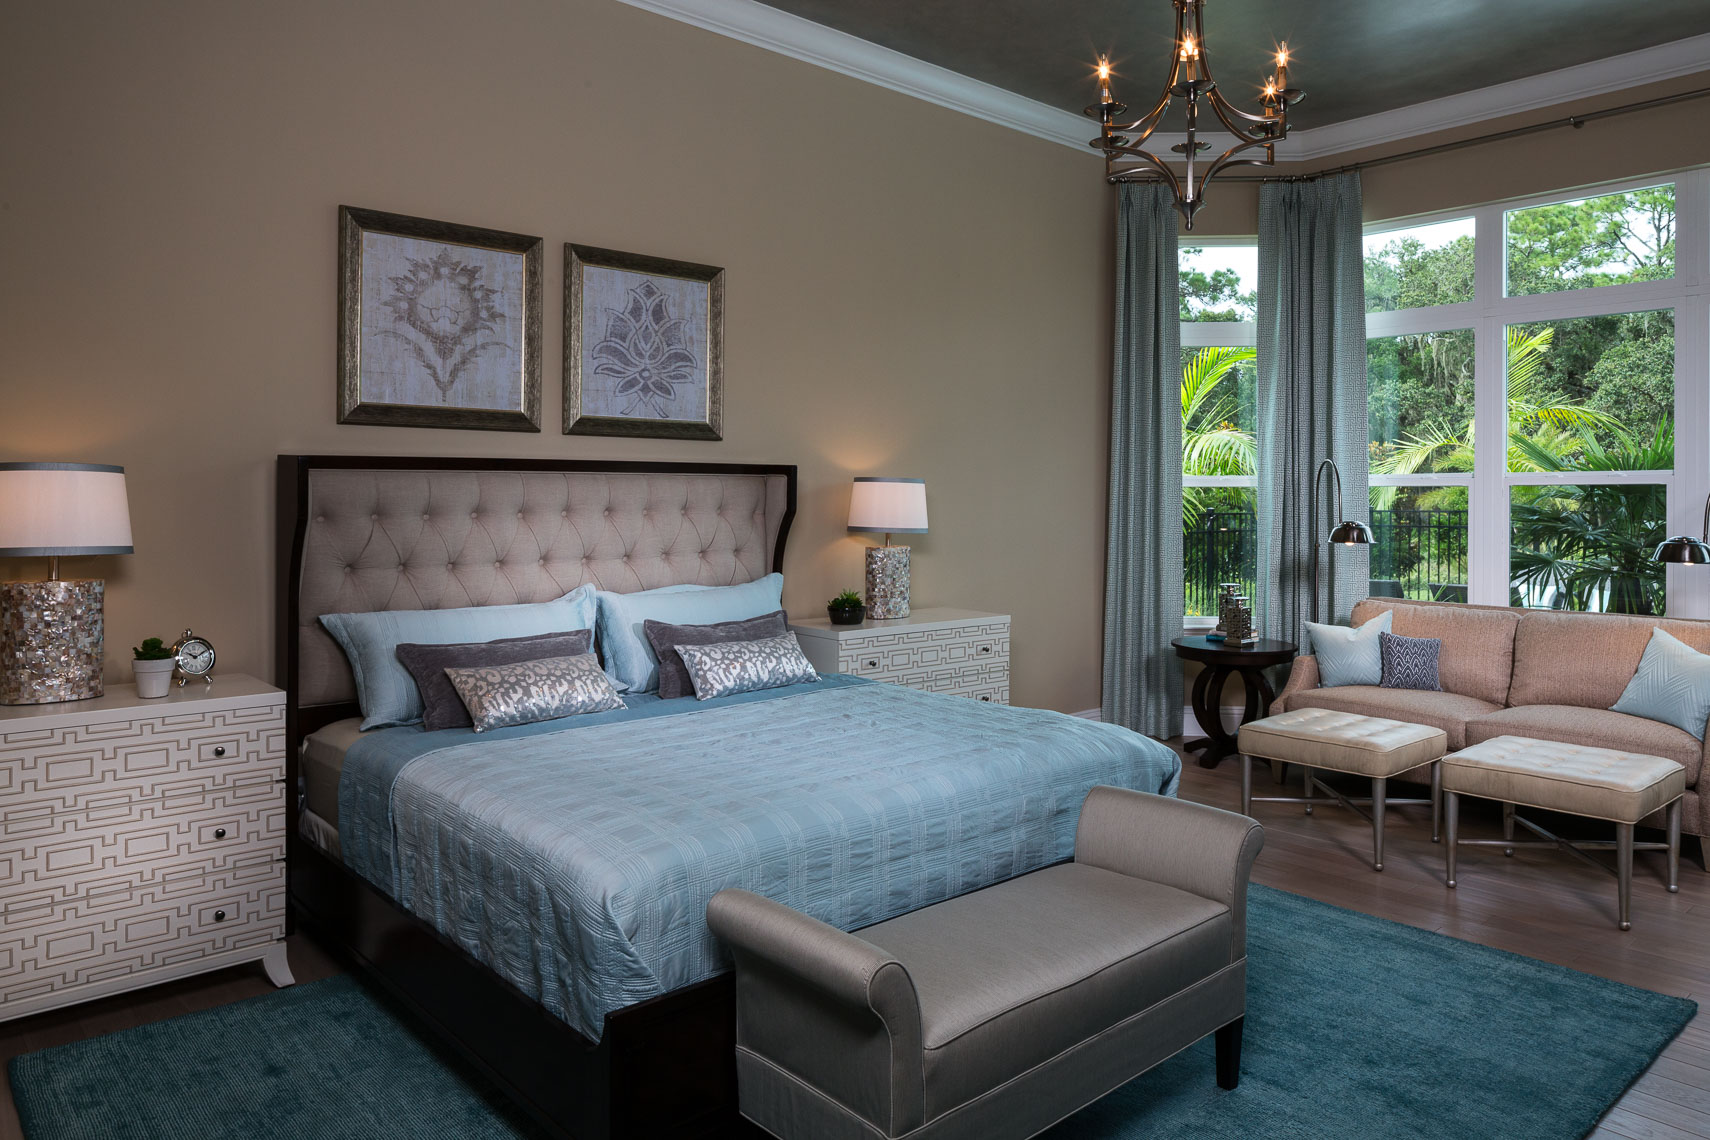 Contemporary Bedroom - Mark Borosch Photography - Lakewood Ranch, FL